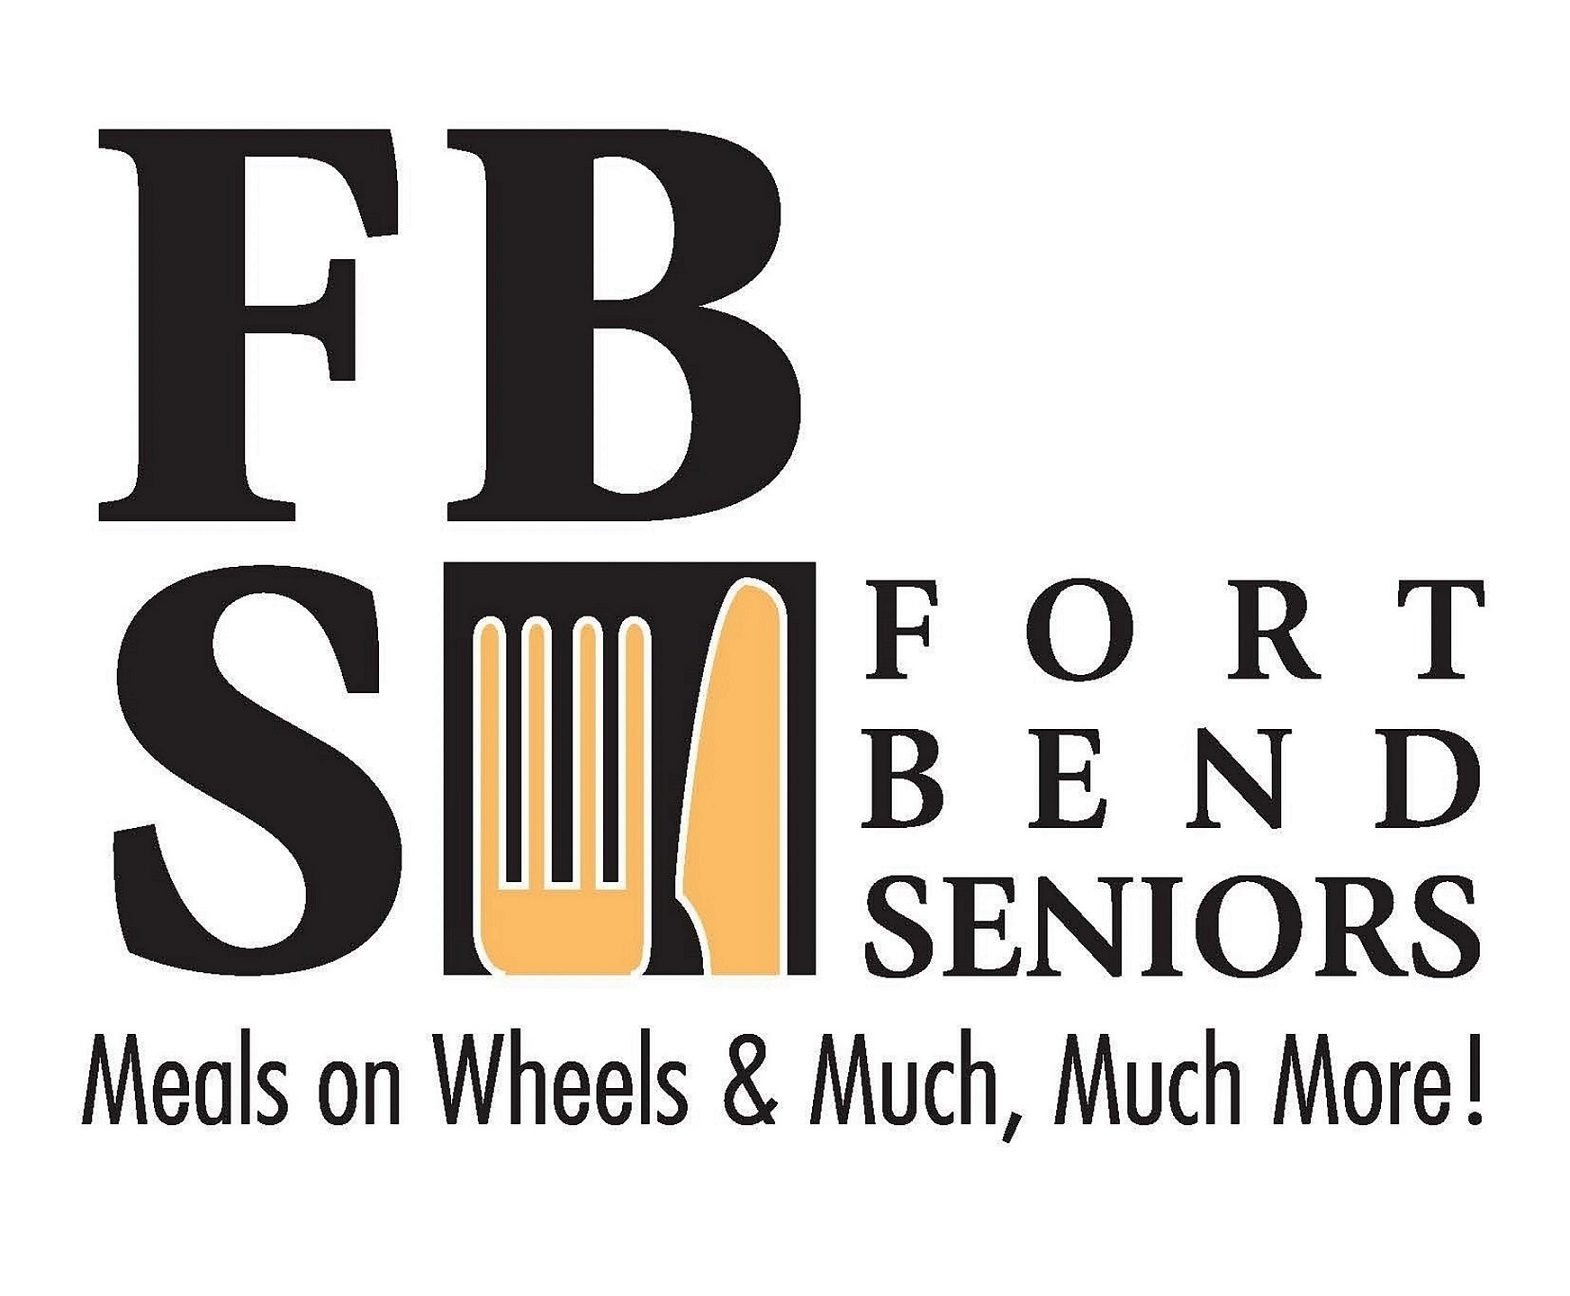 Fort Bend Seniors Meals on Wheels